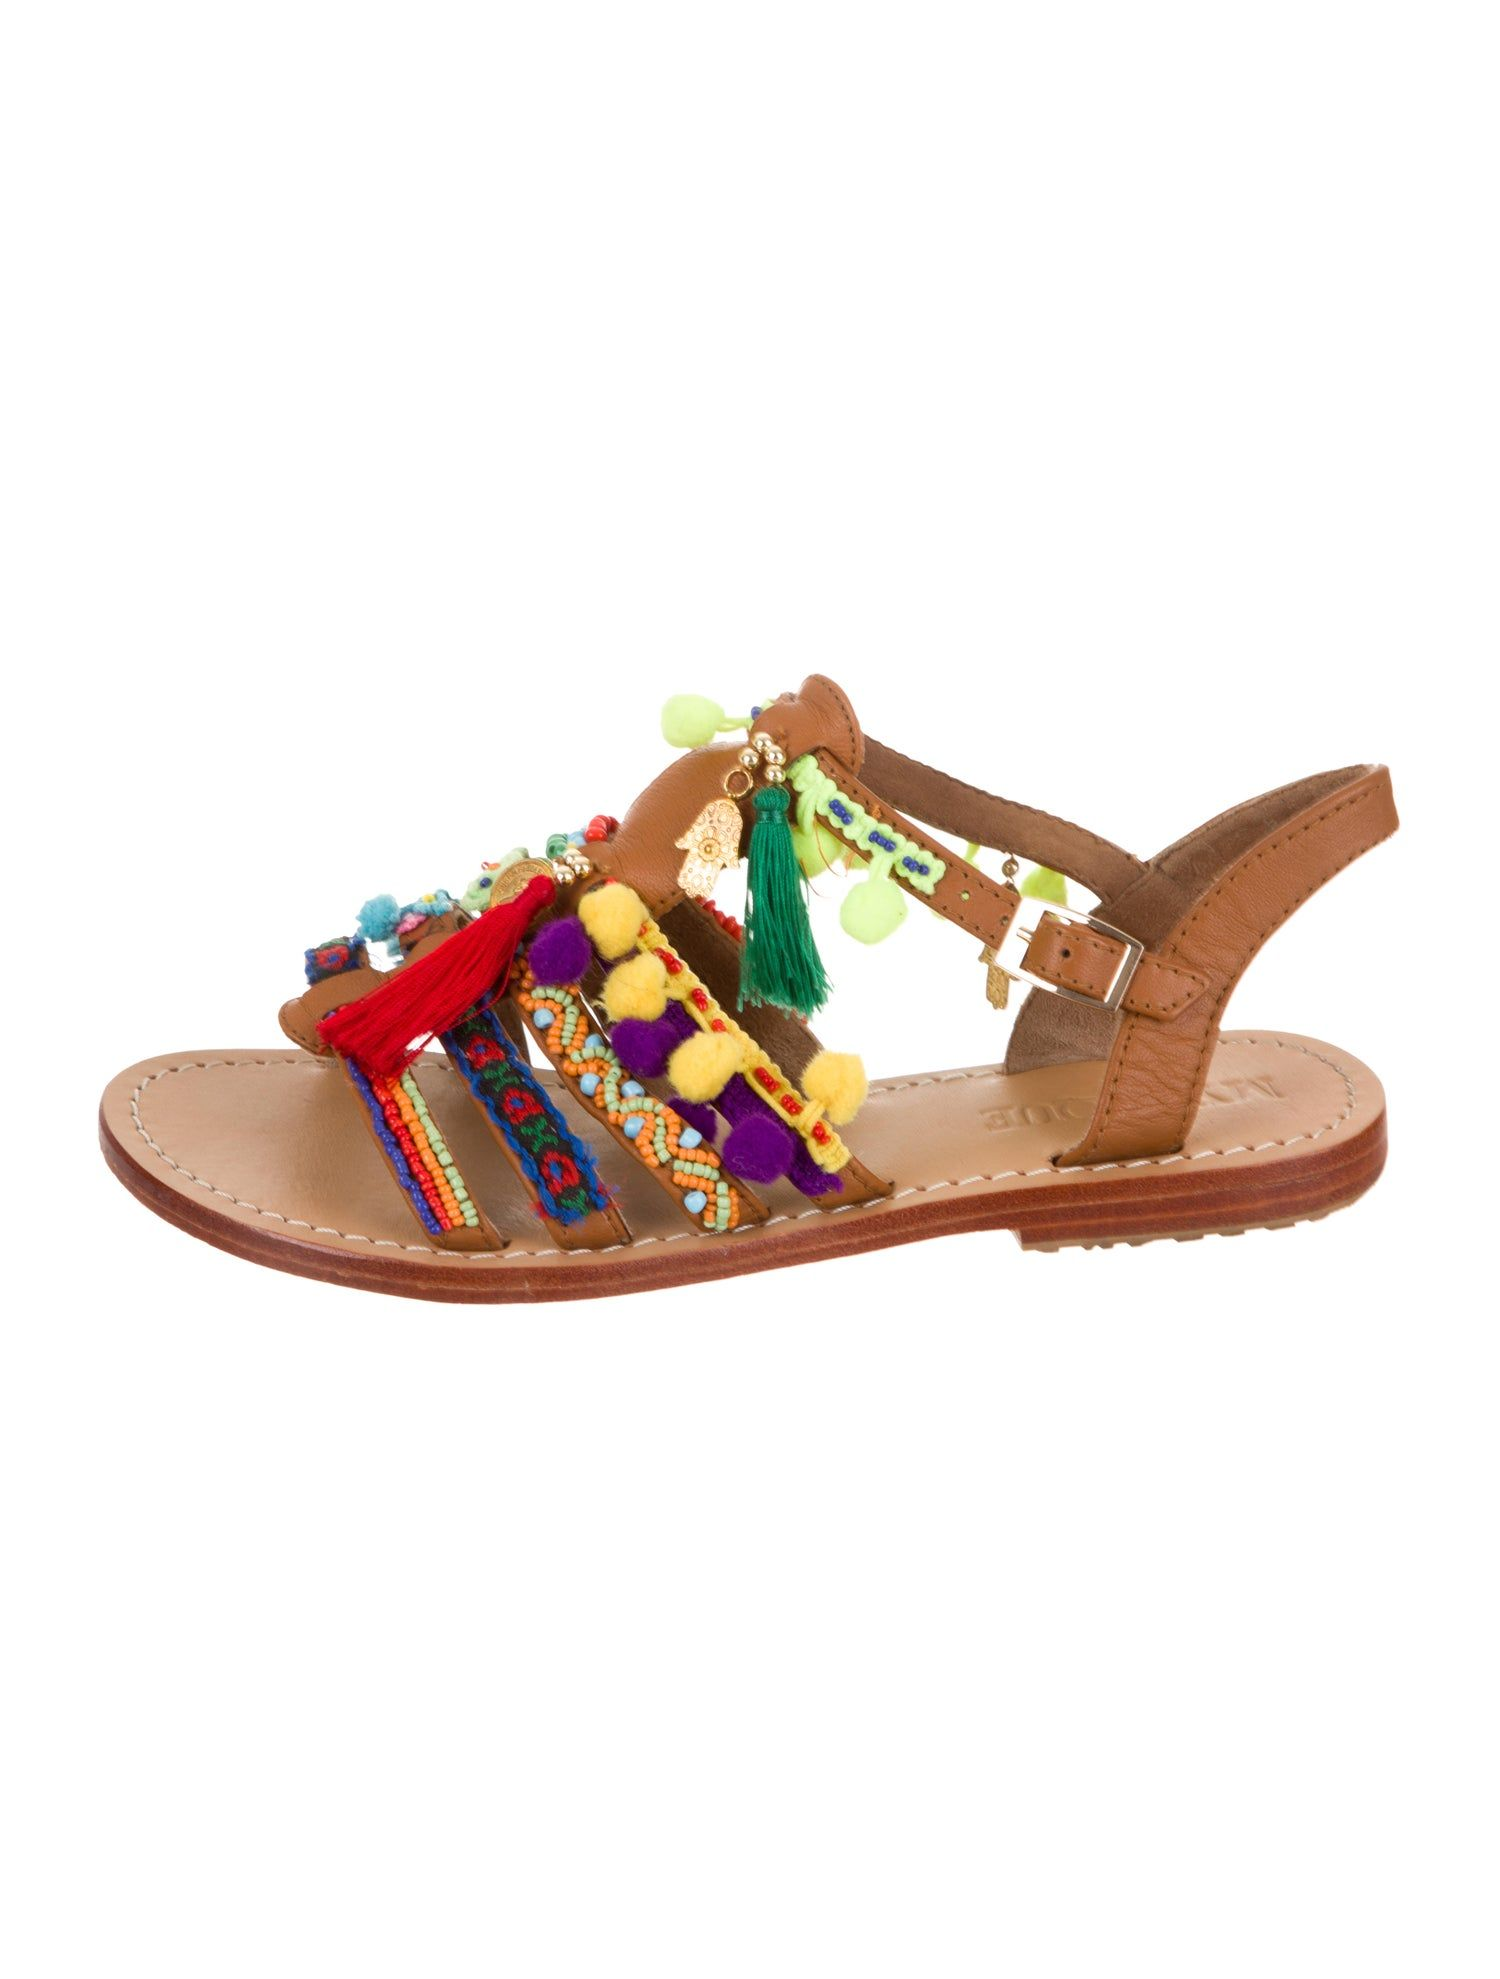 Leather Embroidered Sandals in 2019 | Mystique sandals